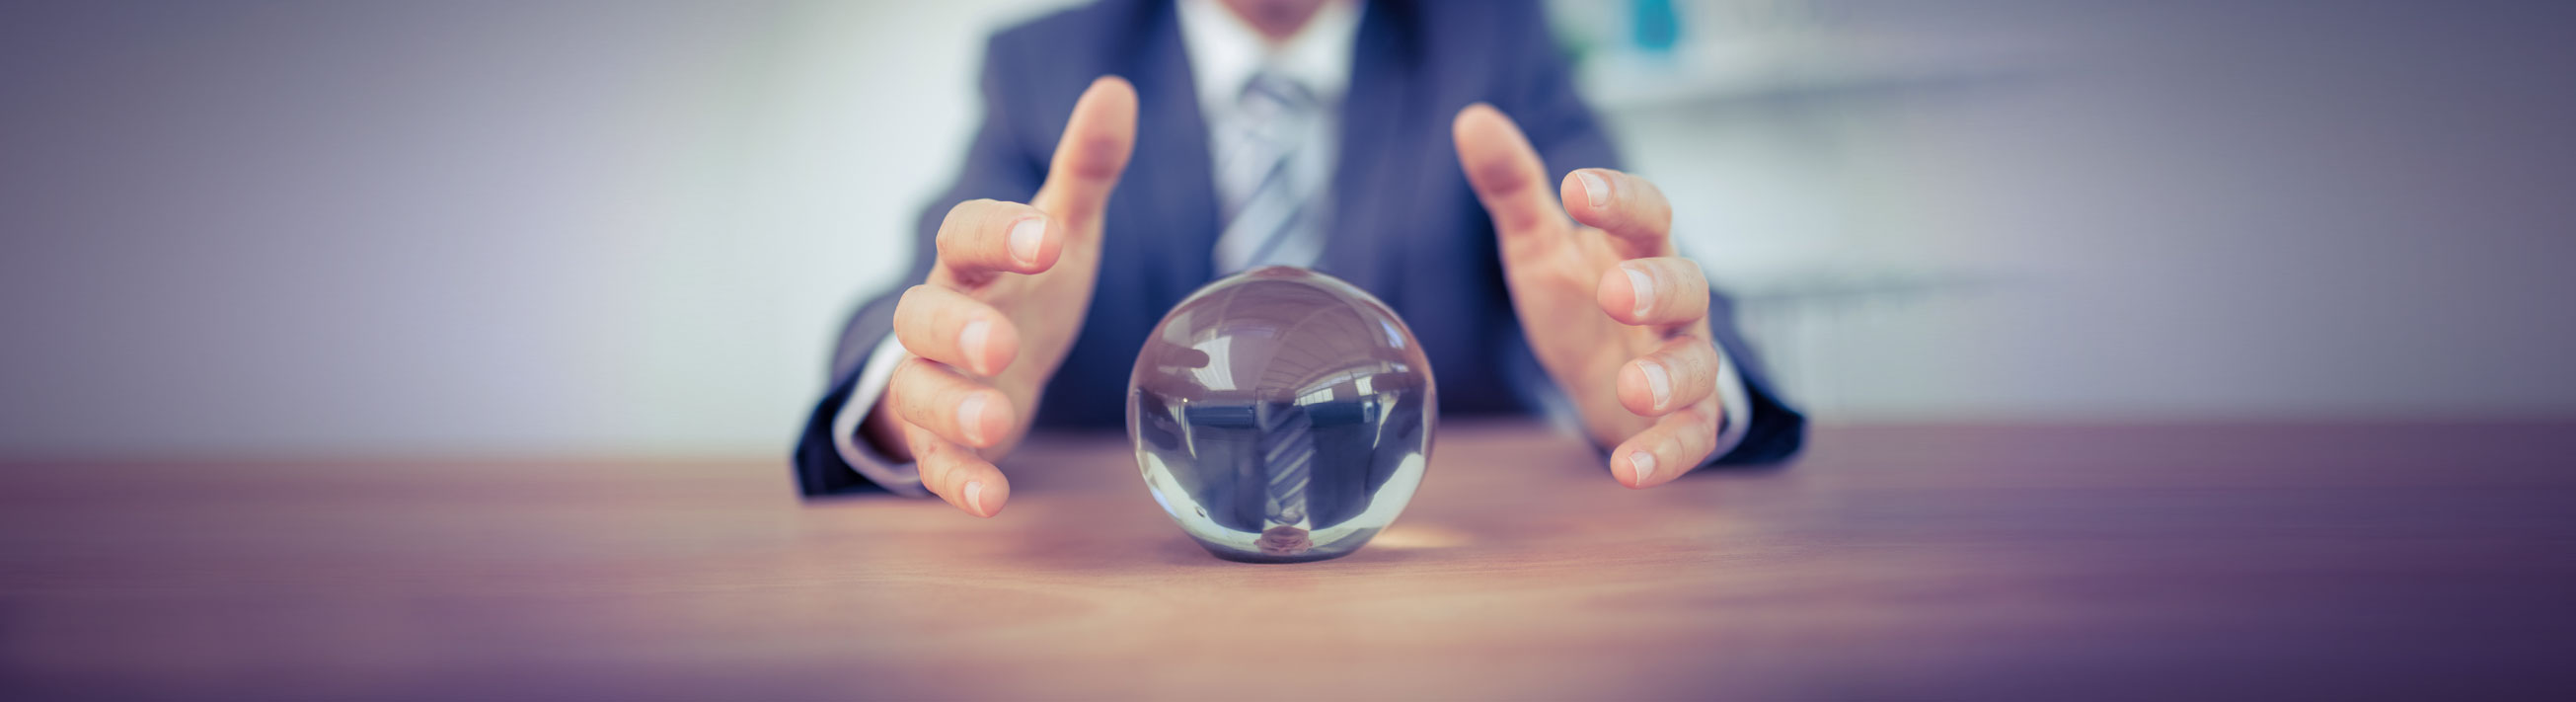 When it comes to bitcoin price predictions, who should you